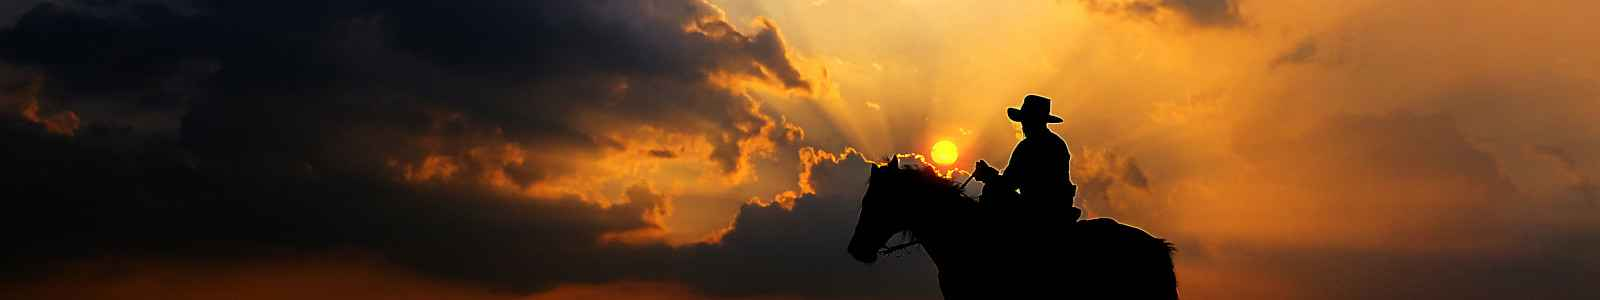 2275-cowboy-solnedgang-sunset-1600x300